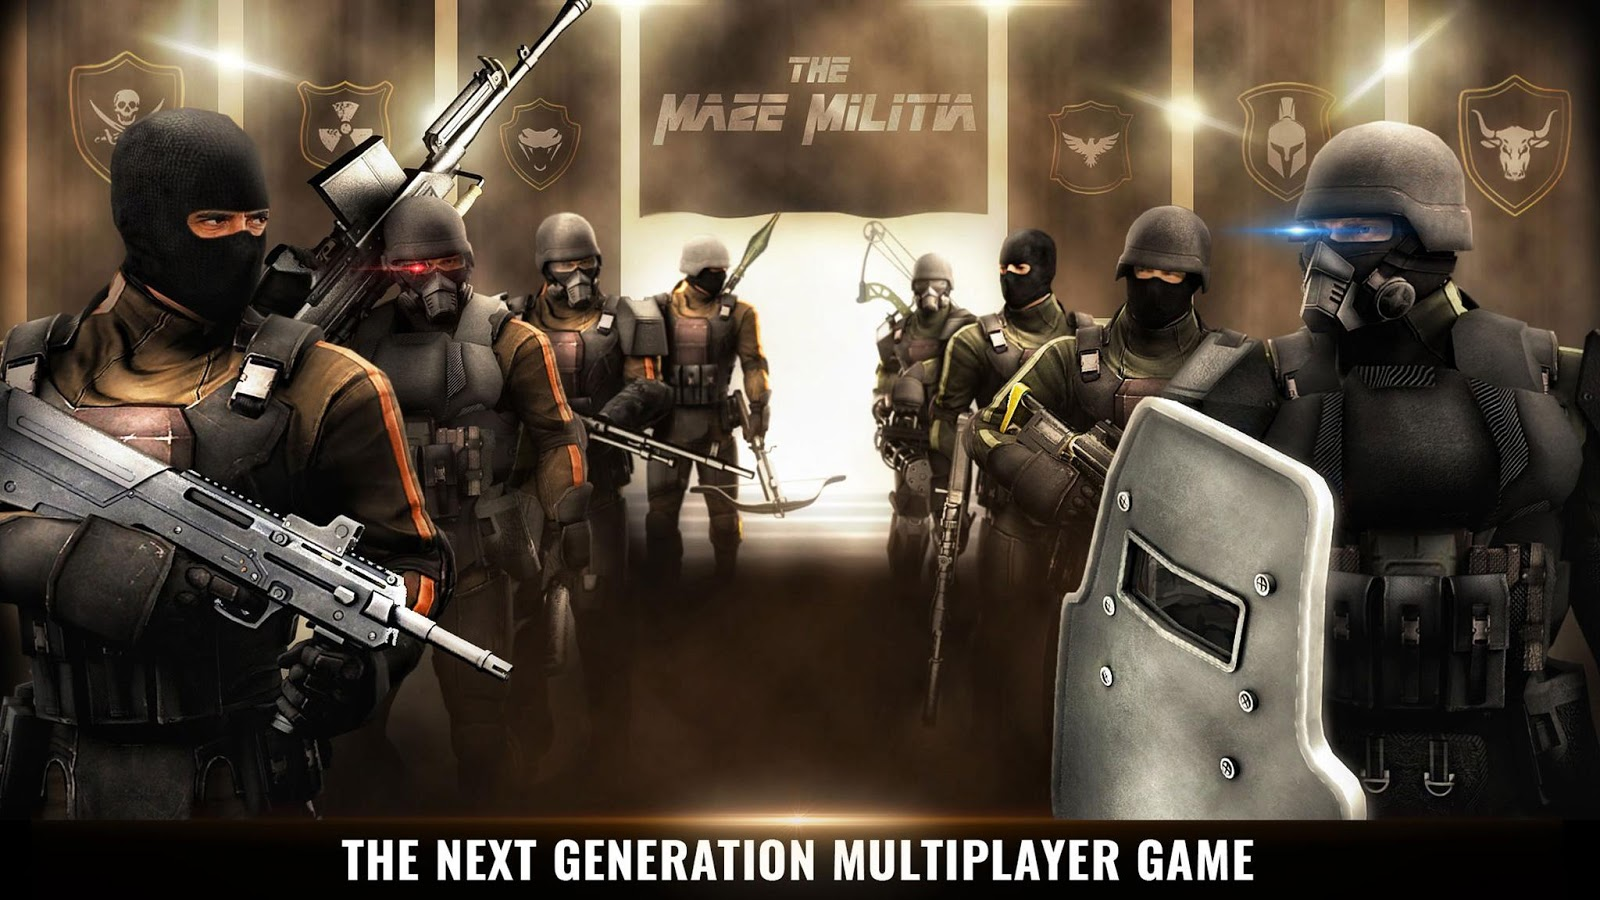 MazeMilitia LAN Online Multiplayer Shooting Game MOD APK